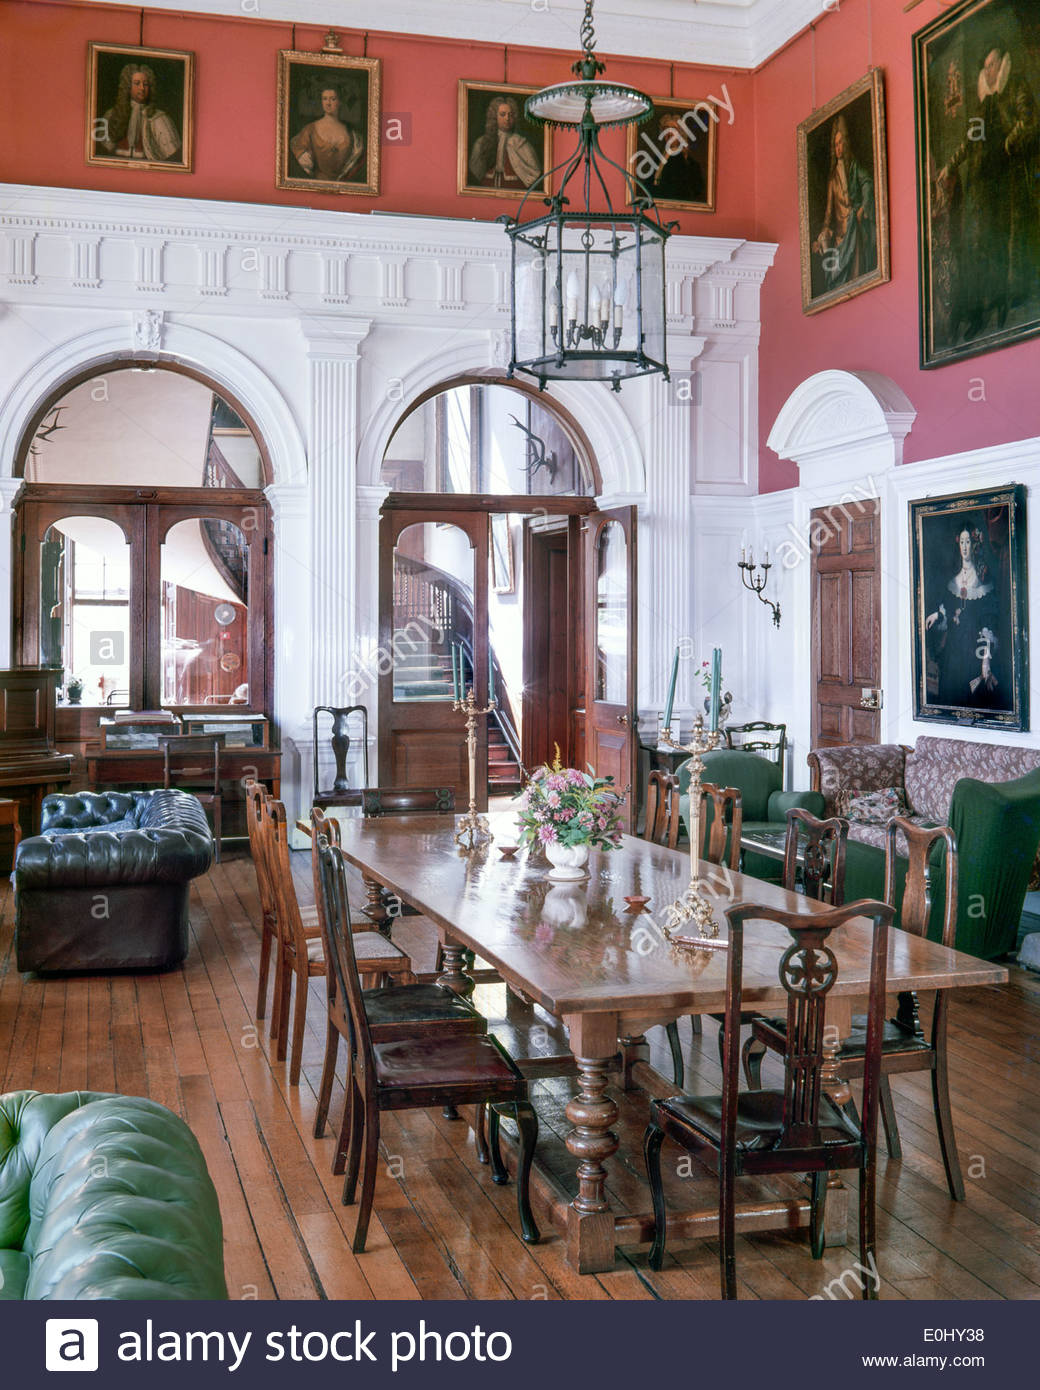 The Great Hall at Danny, a Grade I listed Elizabethan English country house in Sussex, England UK – 1976 (Editorial Use Only) - Stock Image